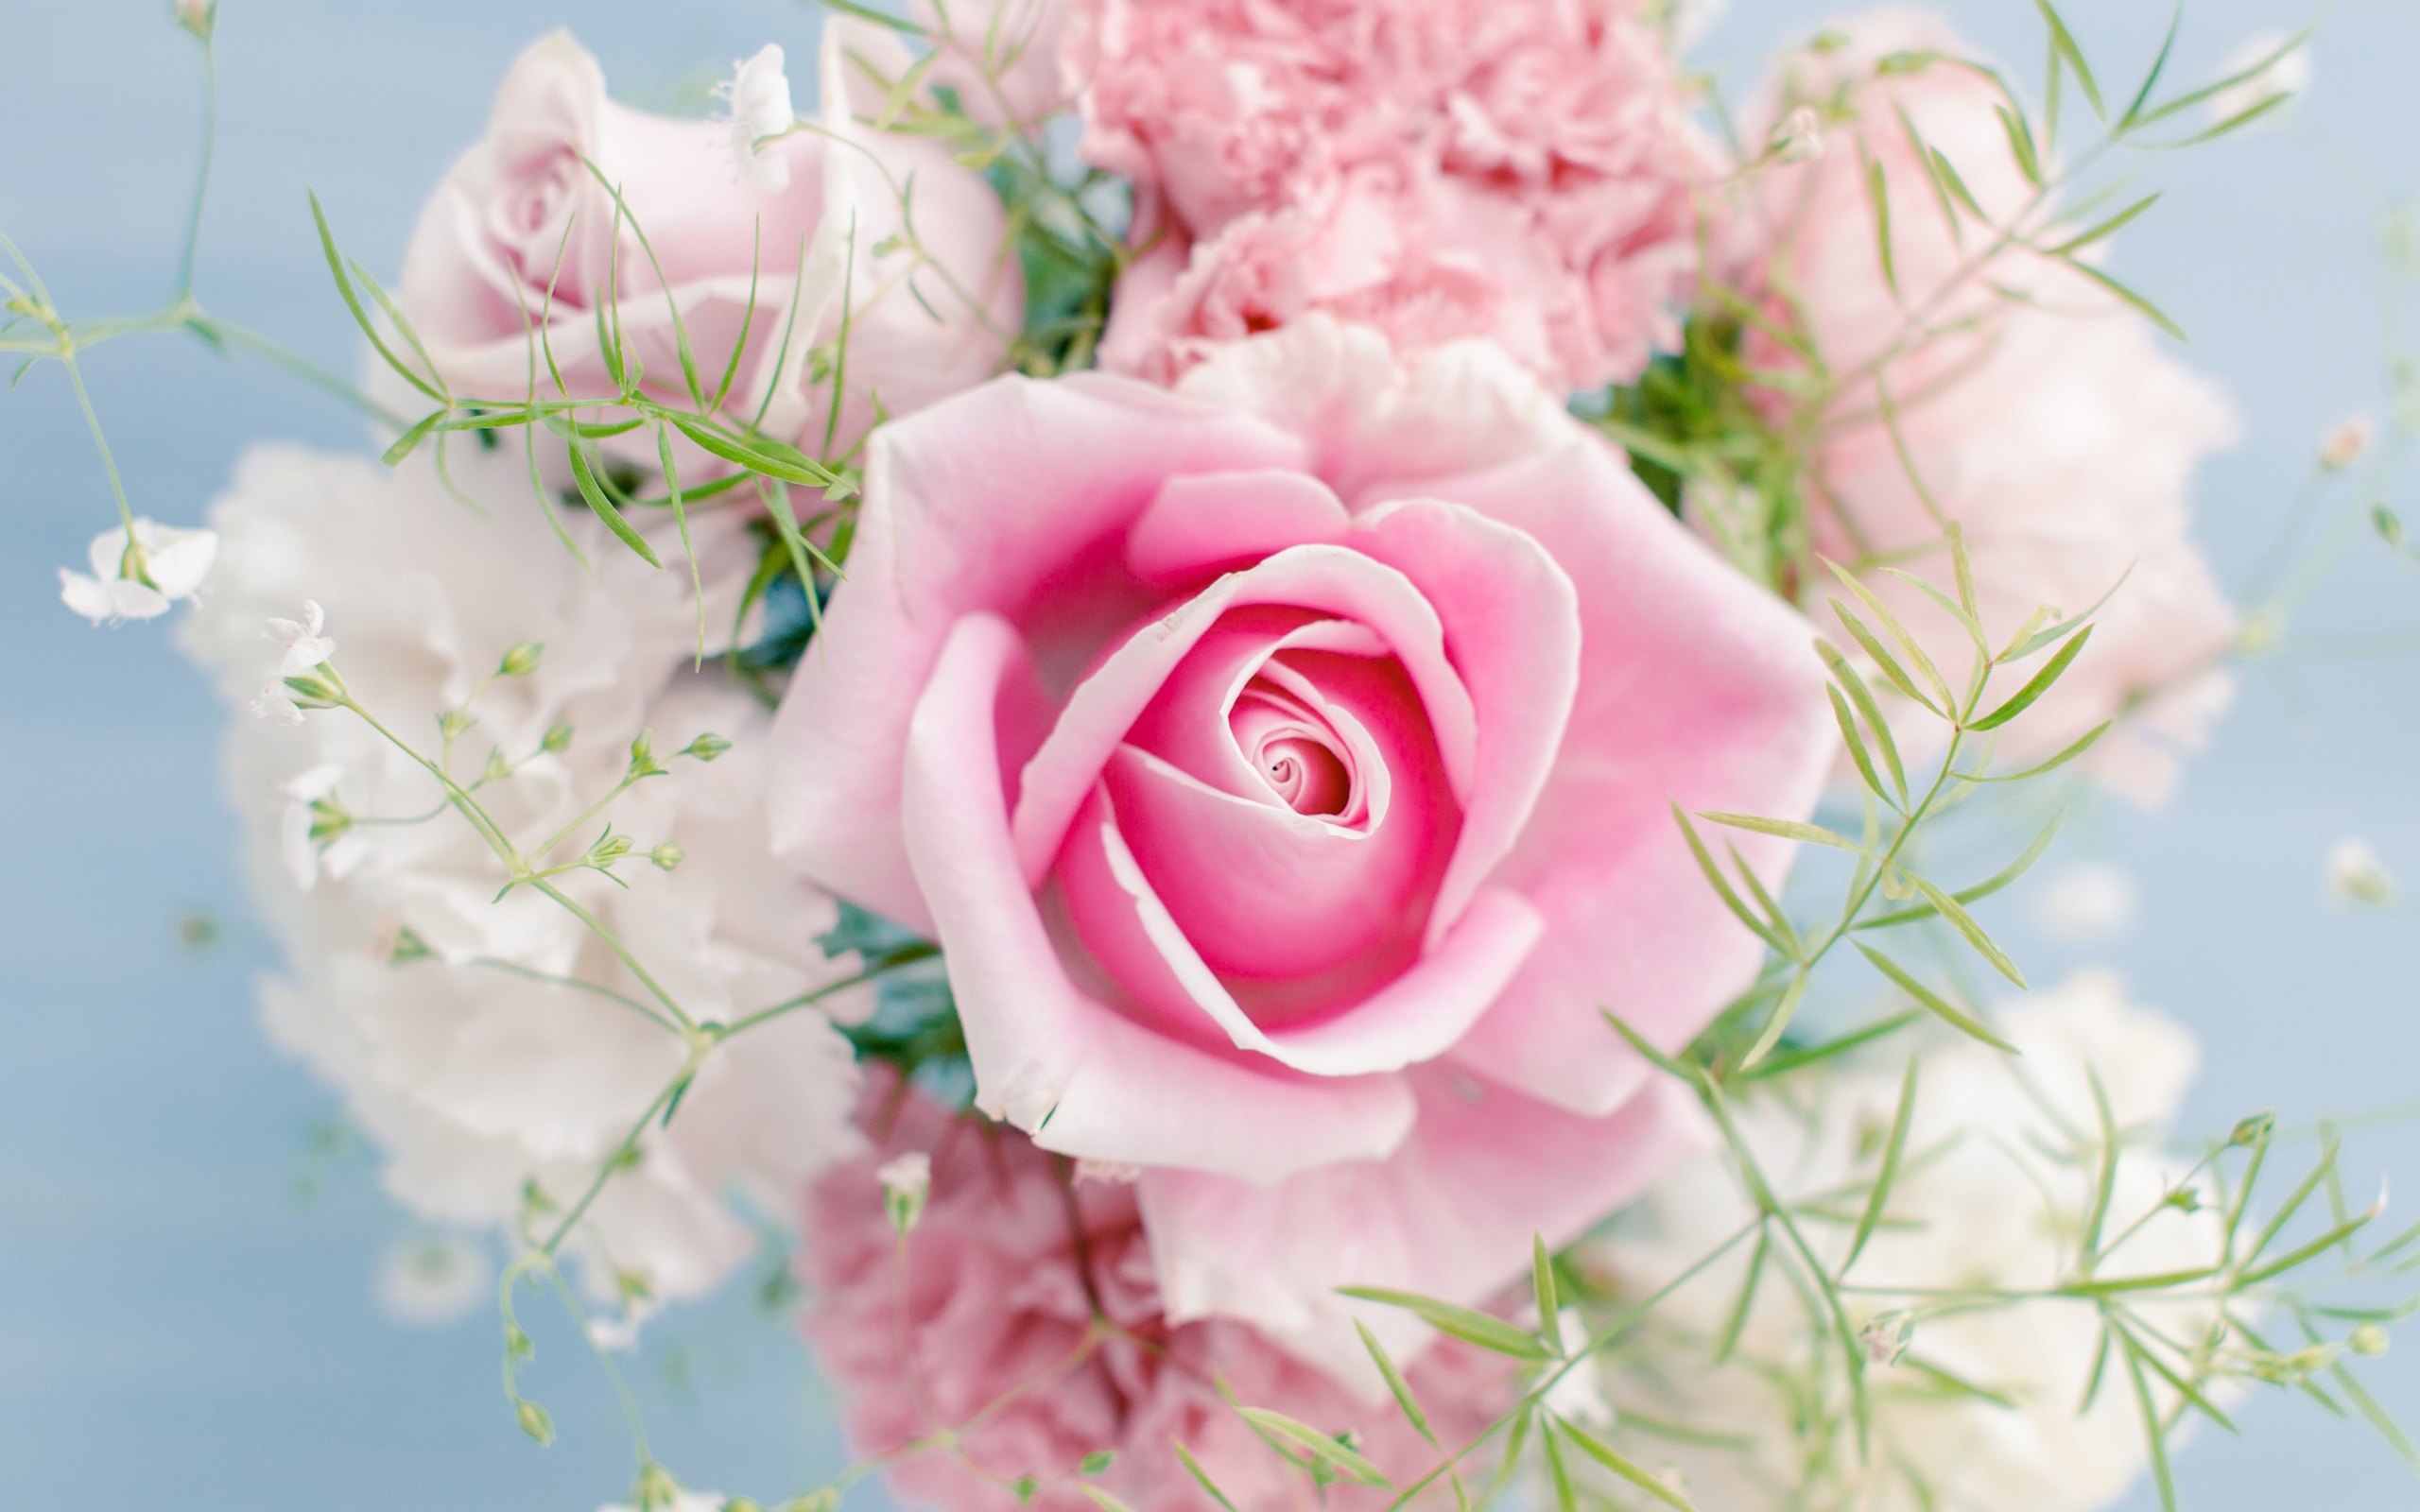 Wallpaper Pink Rose Beautiful Flowers 2560x1600 Hd Picture